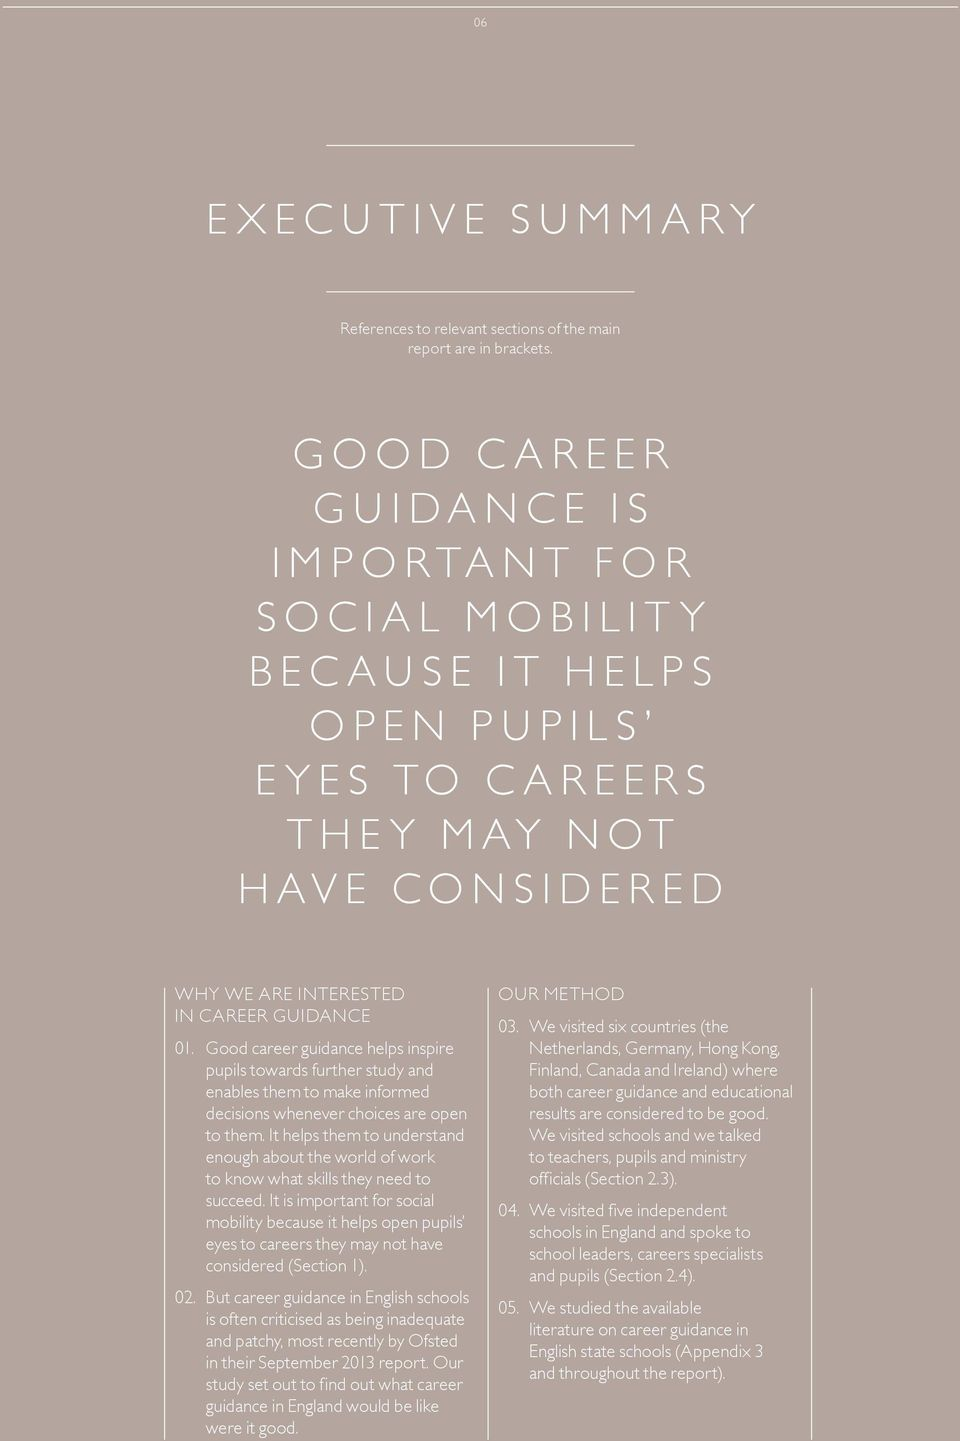 Good career guidance helps inspire pupils towards further study and enables them to make informed decisions whenever choices are open to them.